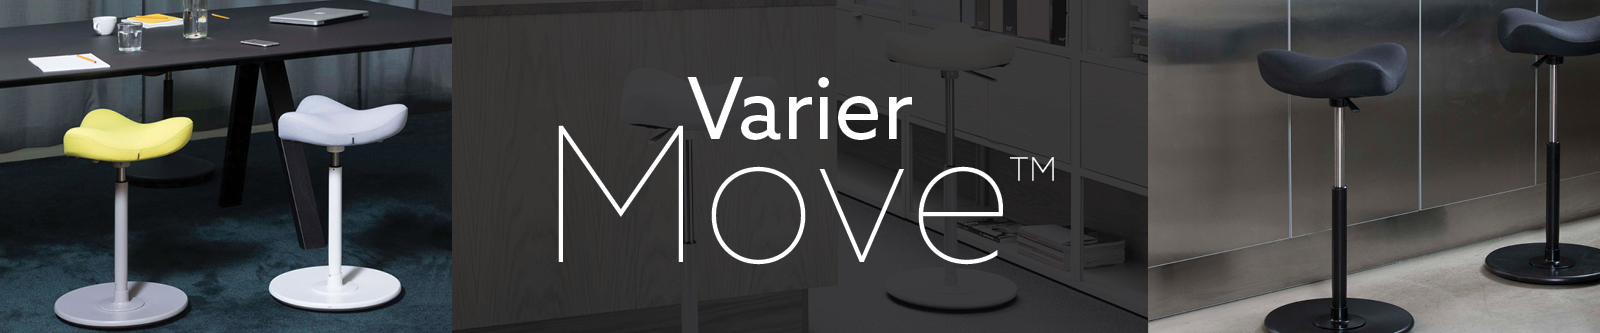 varier move